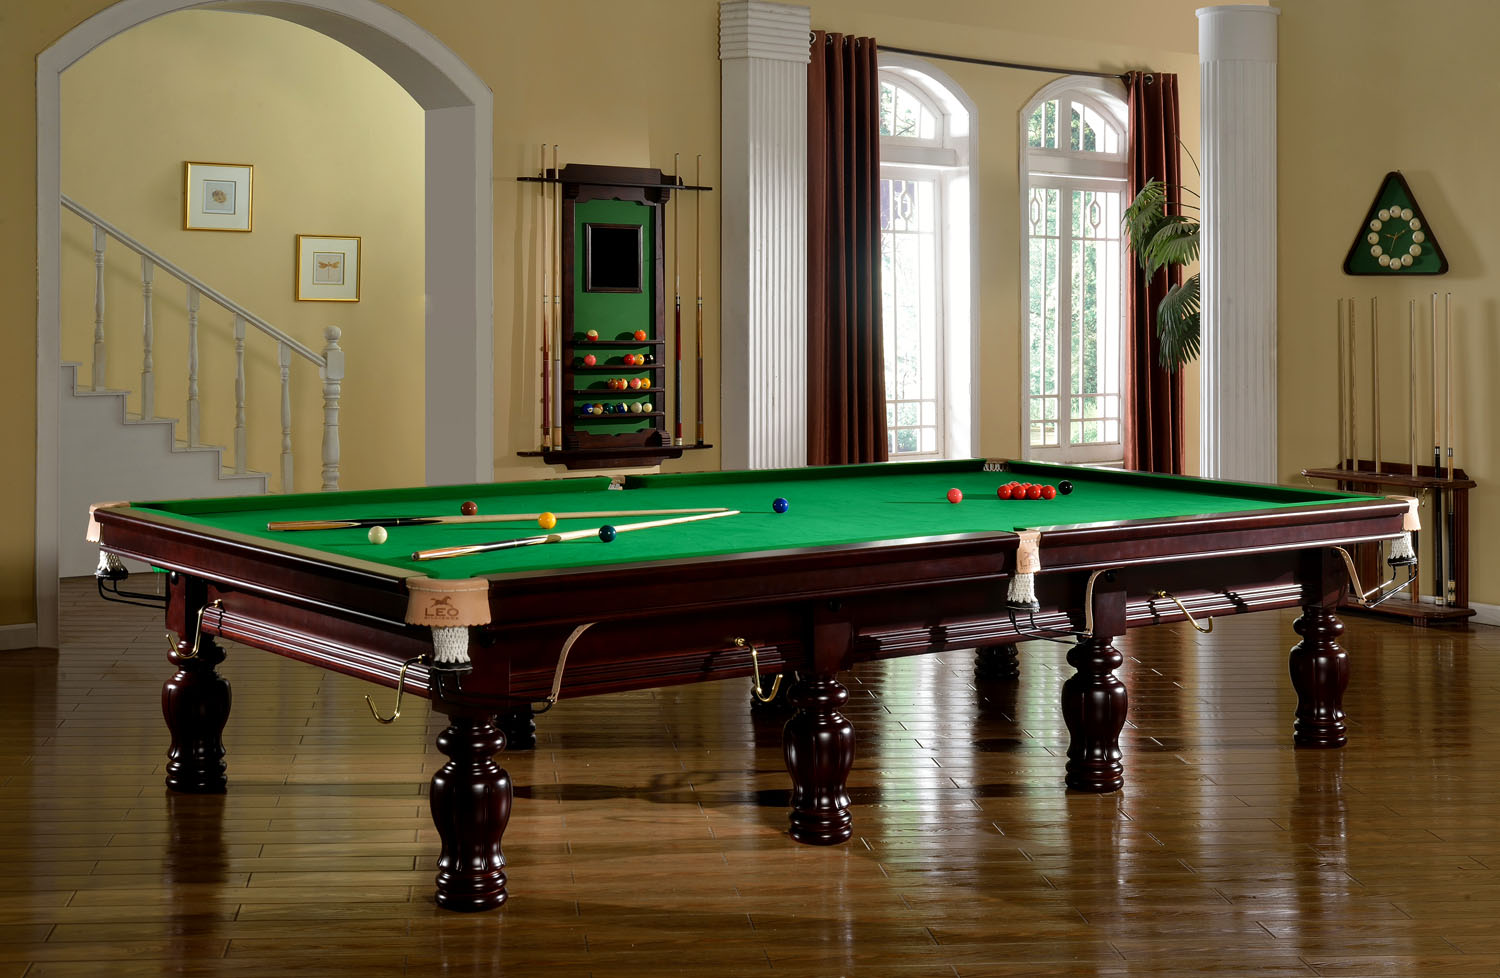 http://www.legobilliards.com.cn/upload/images/201506/14349416697329.jpg